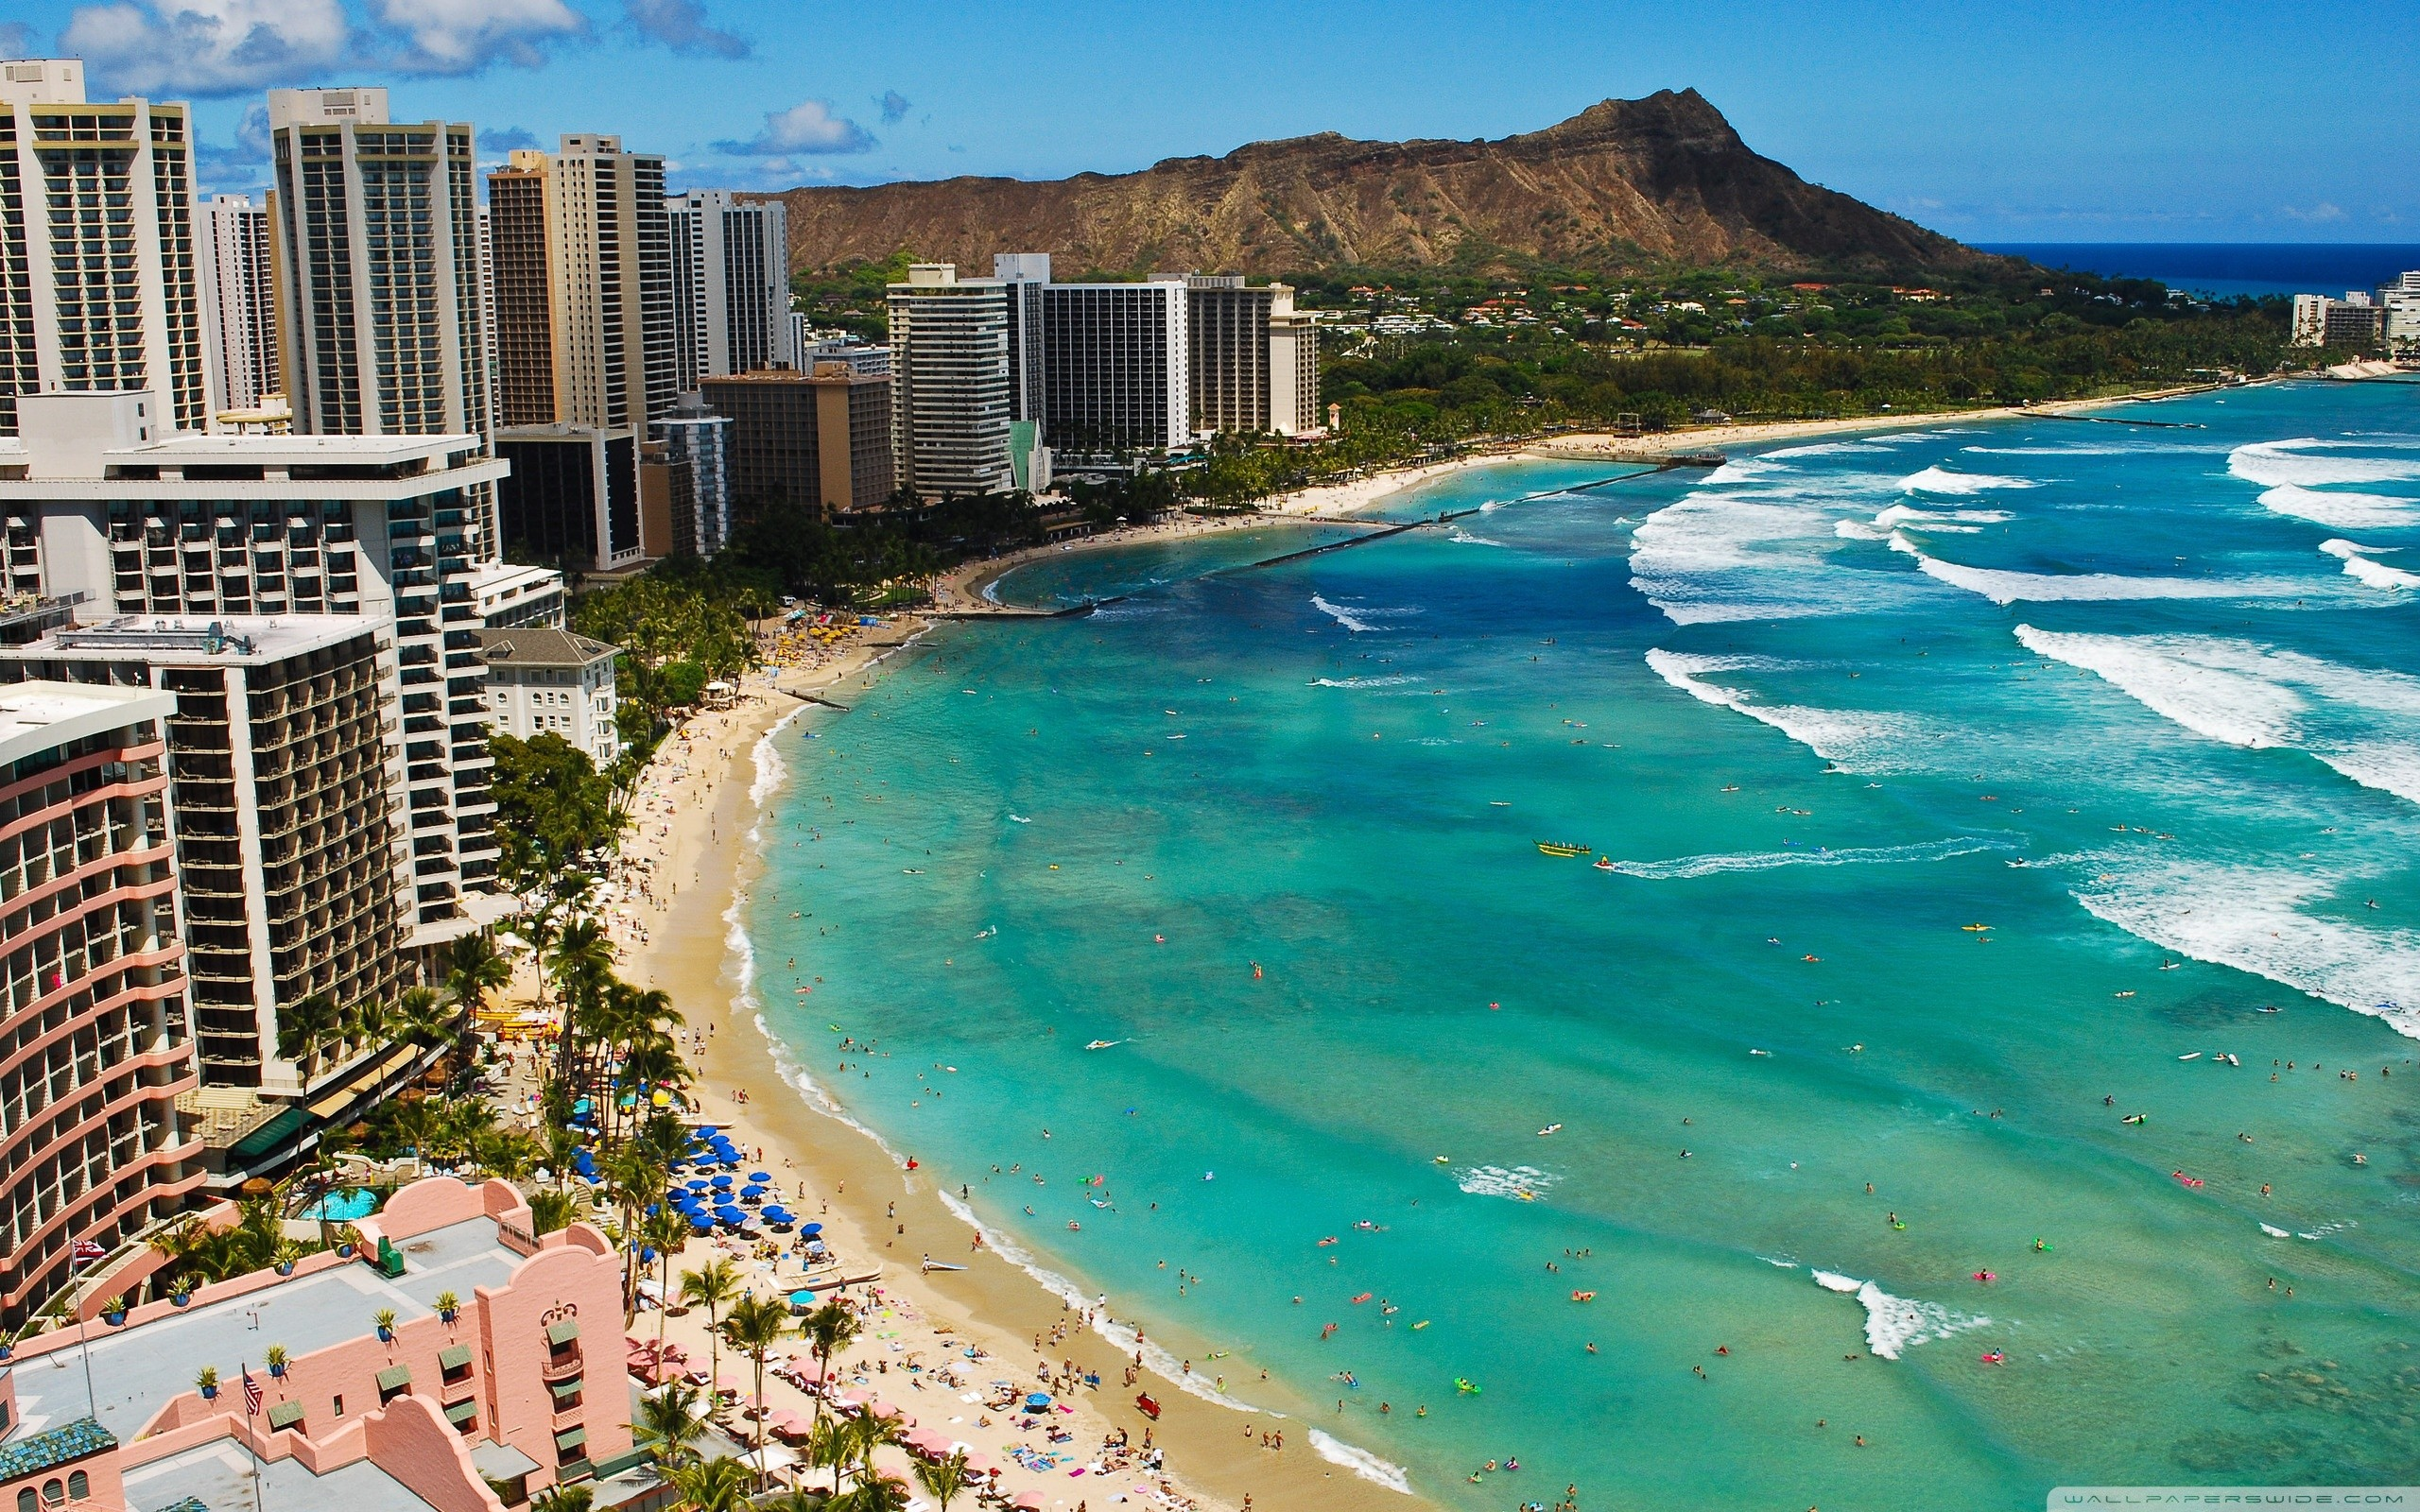 61 Waikiki Beach Wallpapers on WallpaperPlay 2560x1600